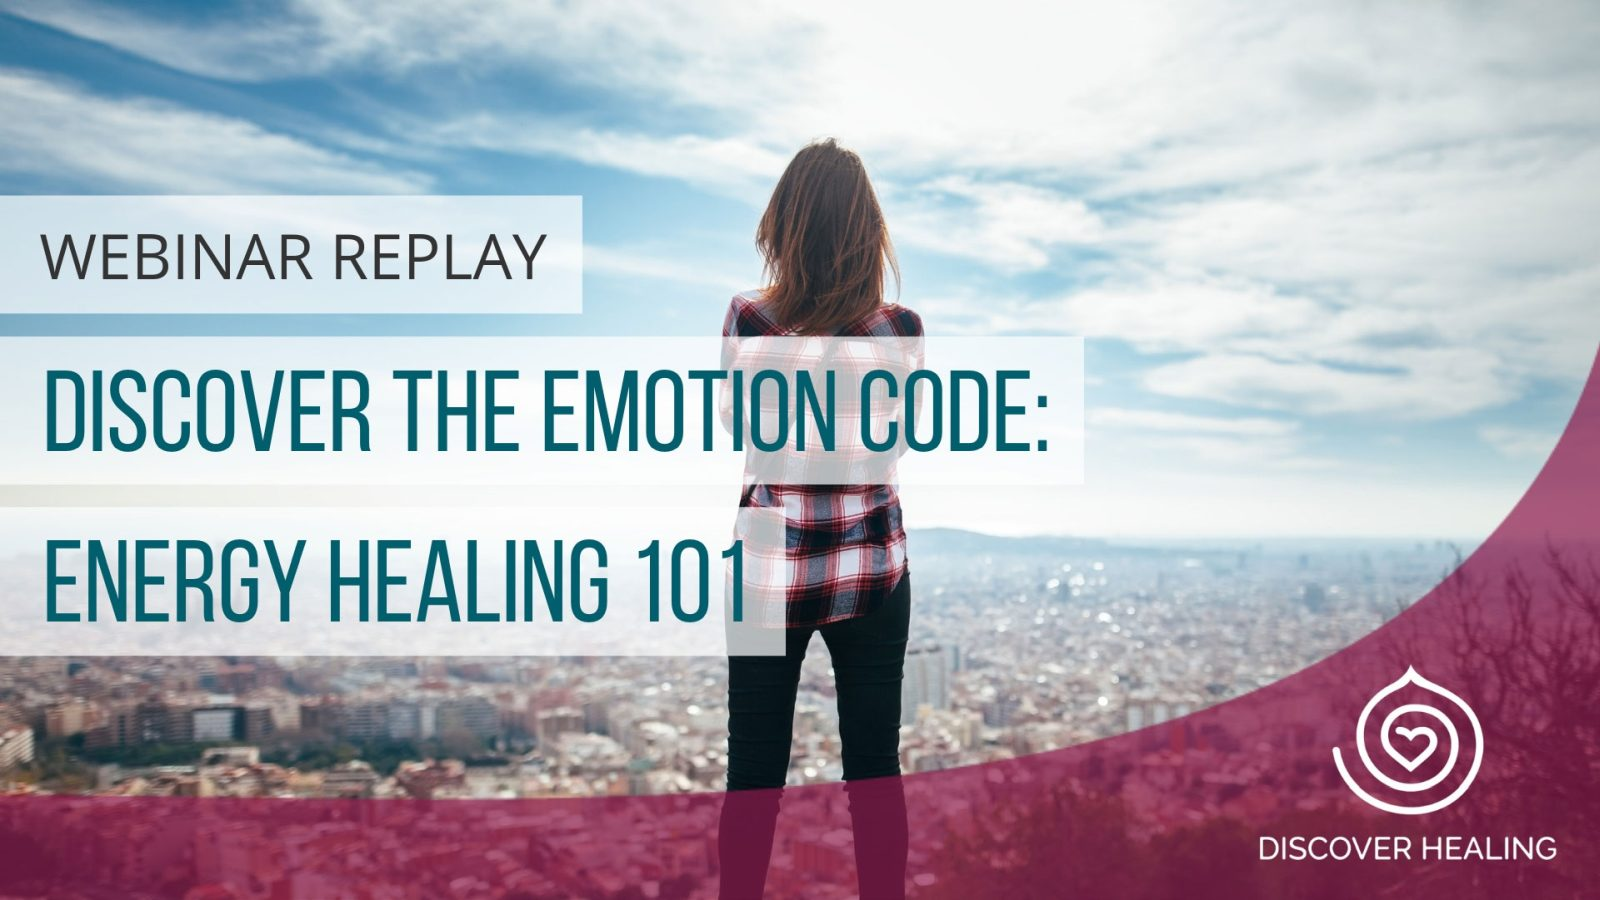 discover the emotion code: energy healing 101